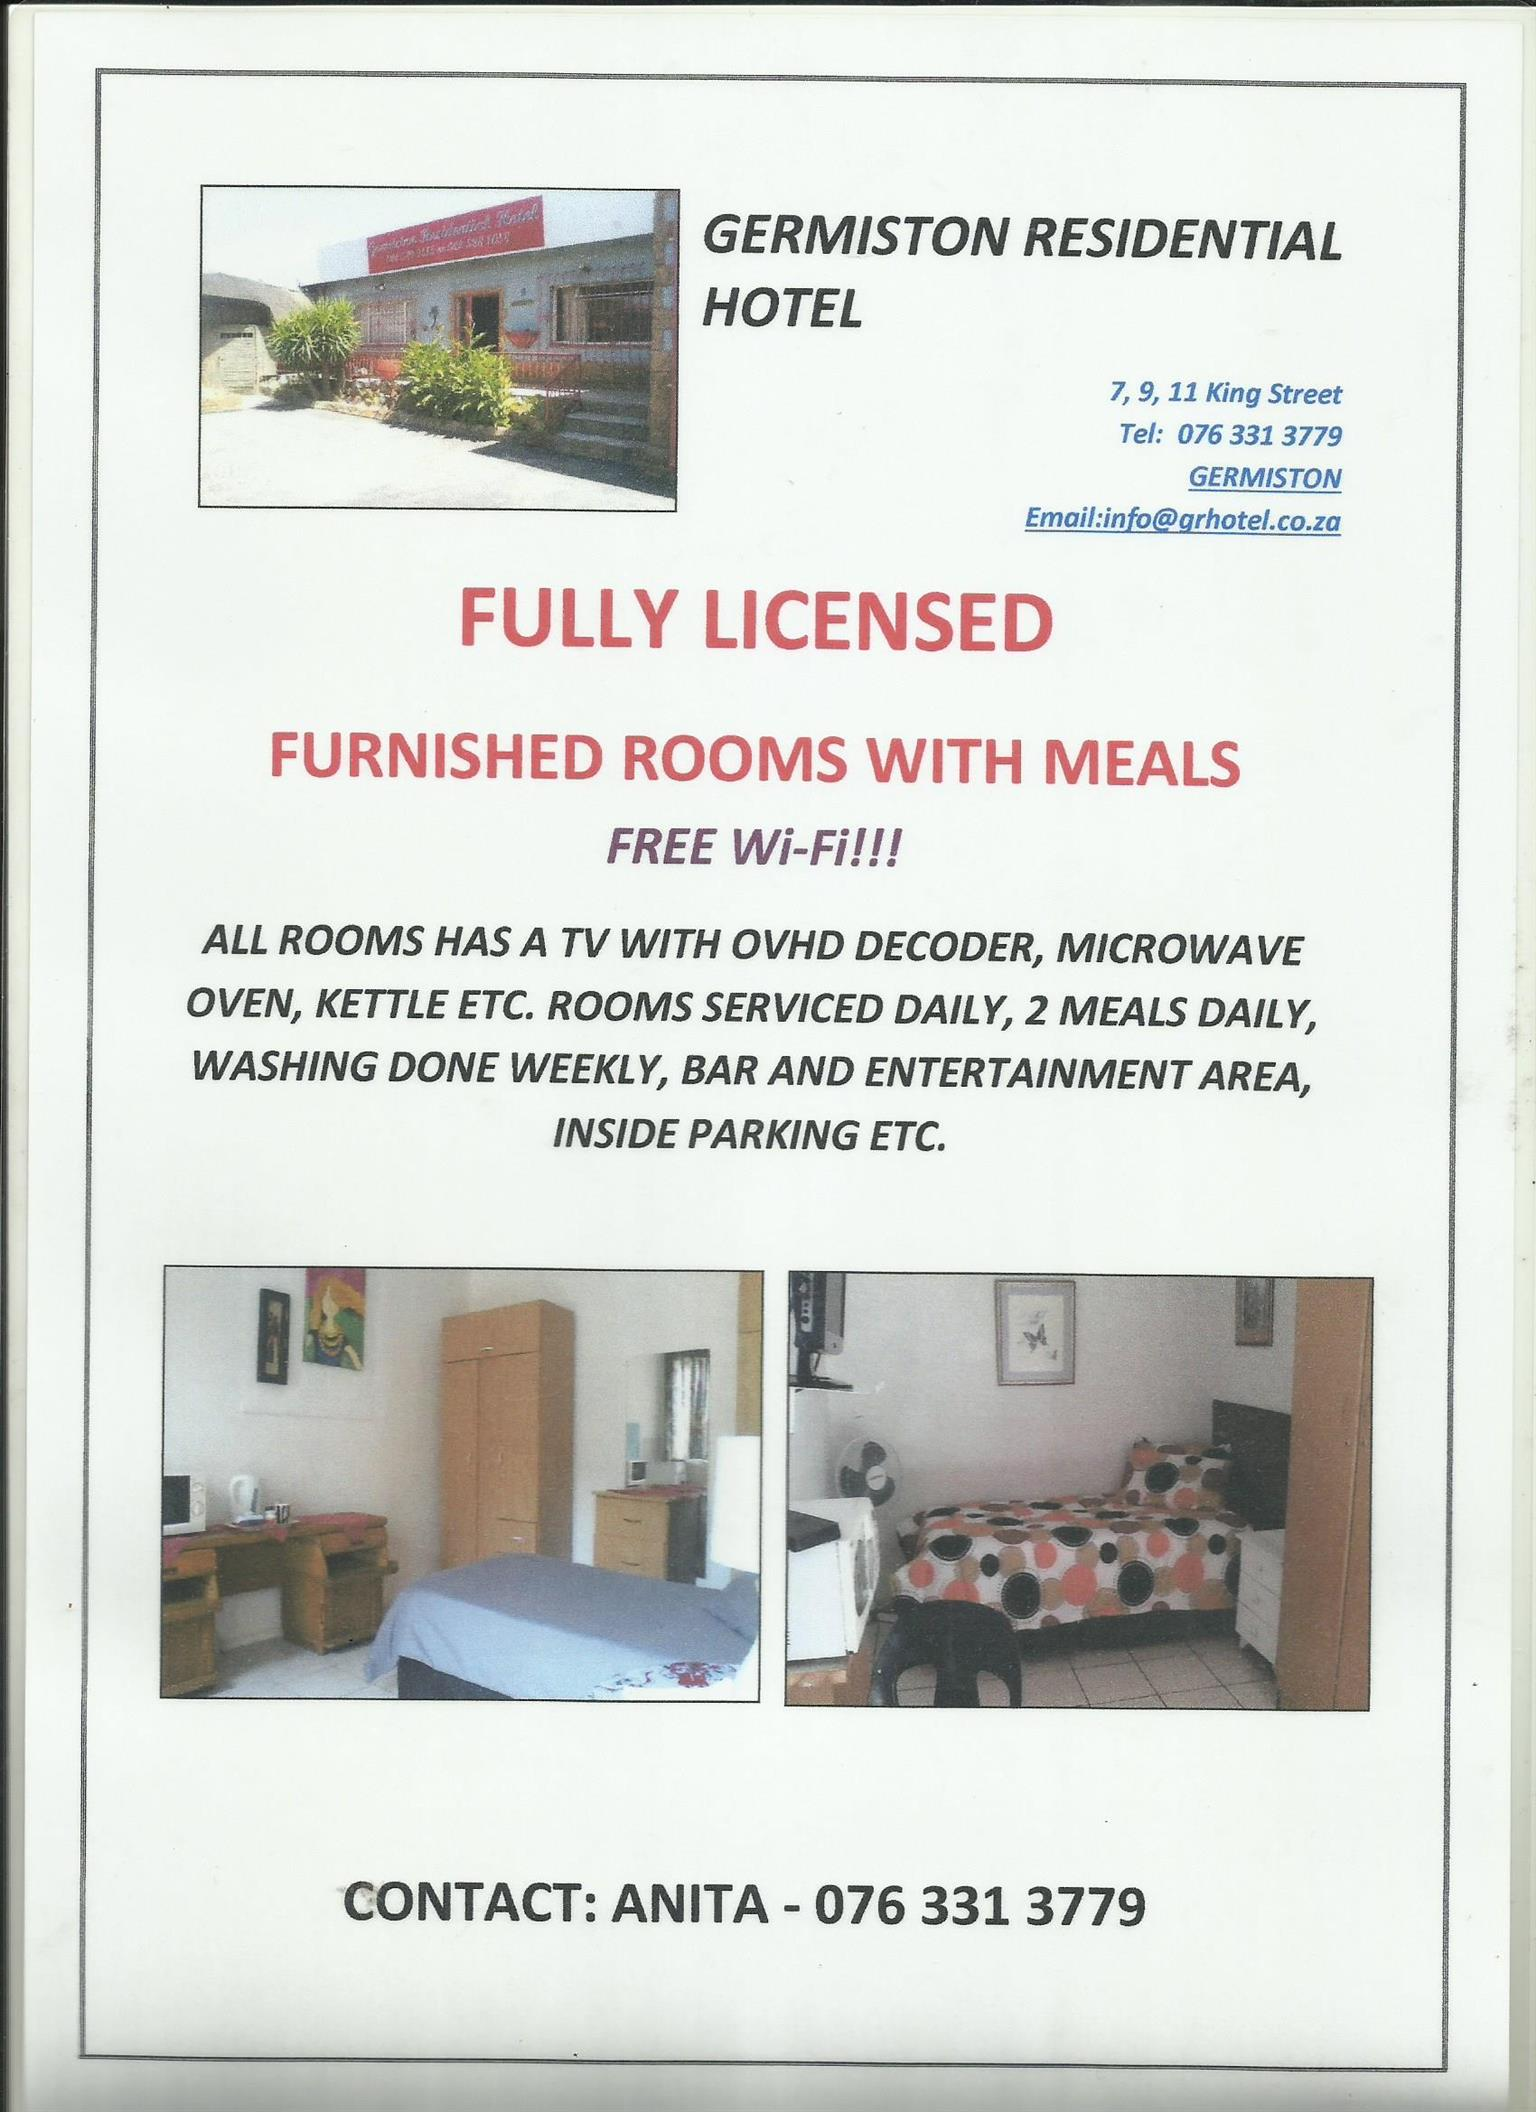 Prices for accommodation for furnished rooms. Bar, Wifi etc.